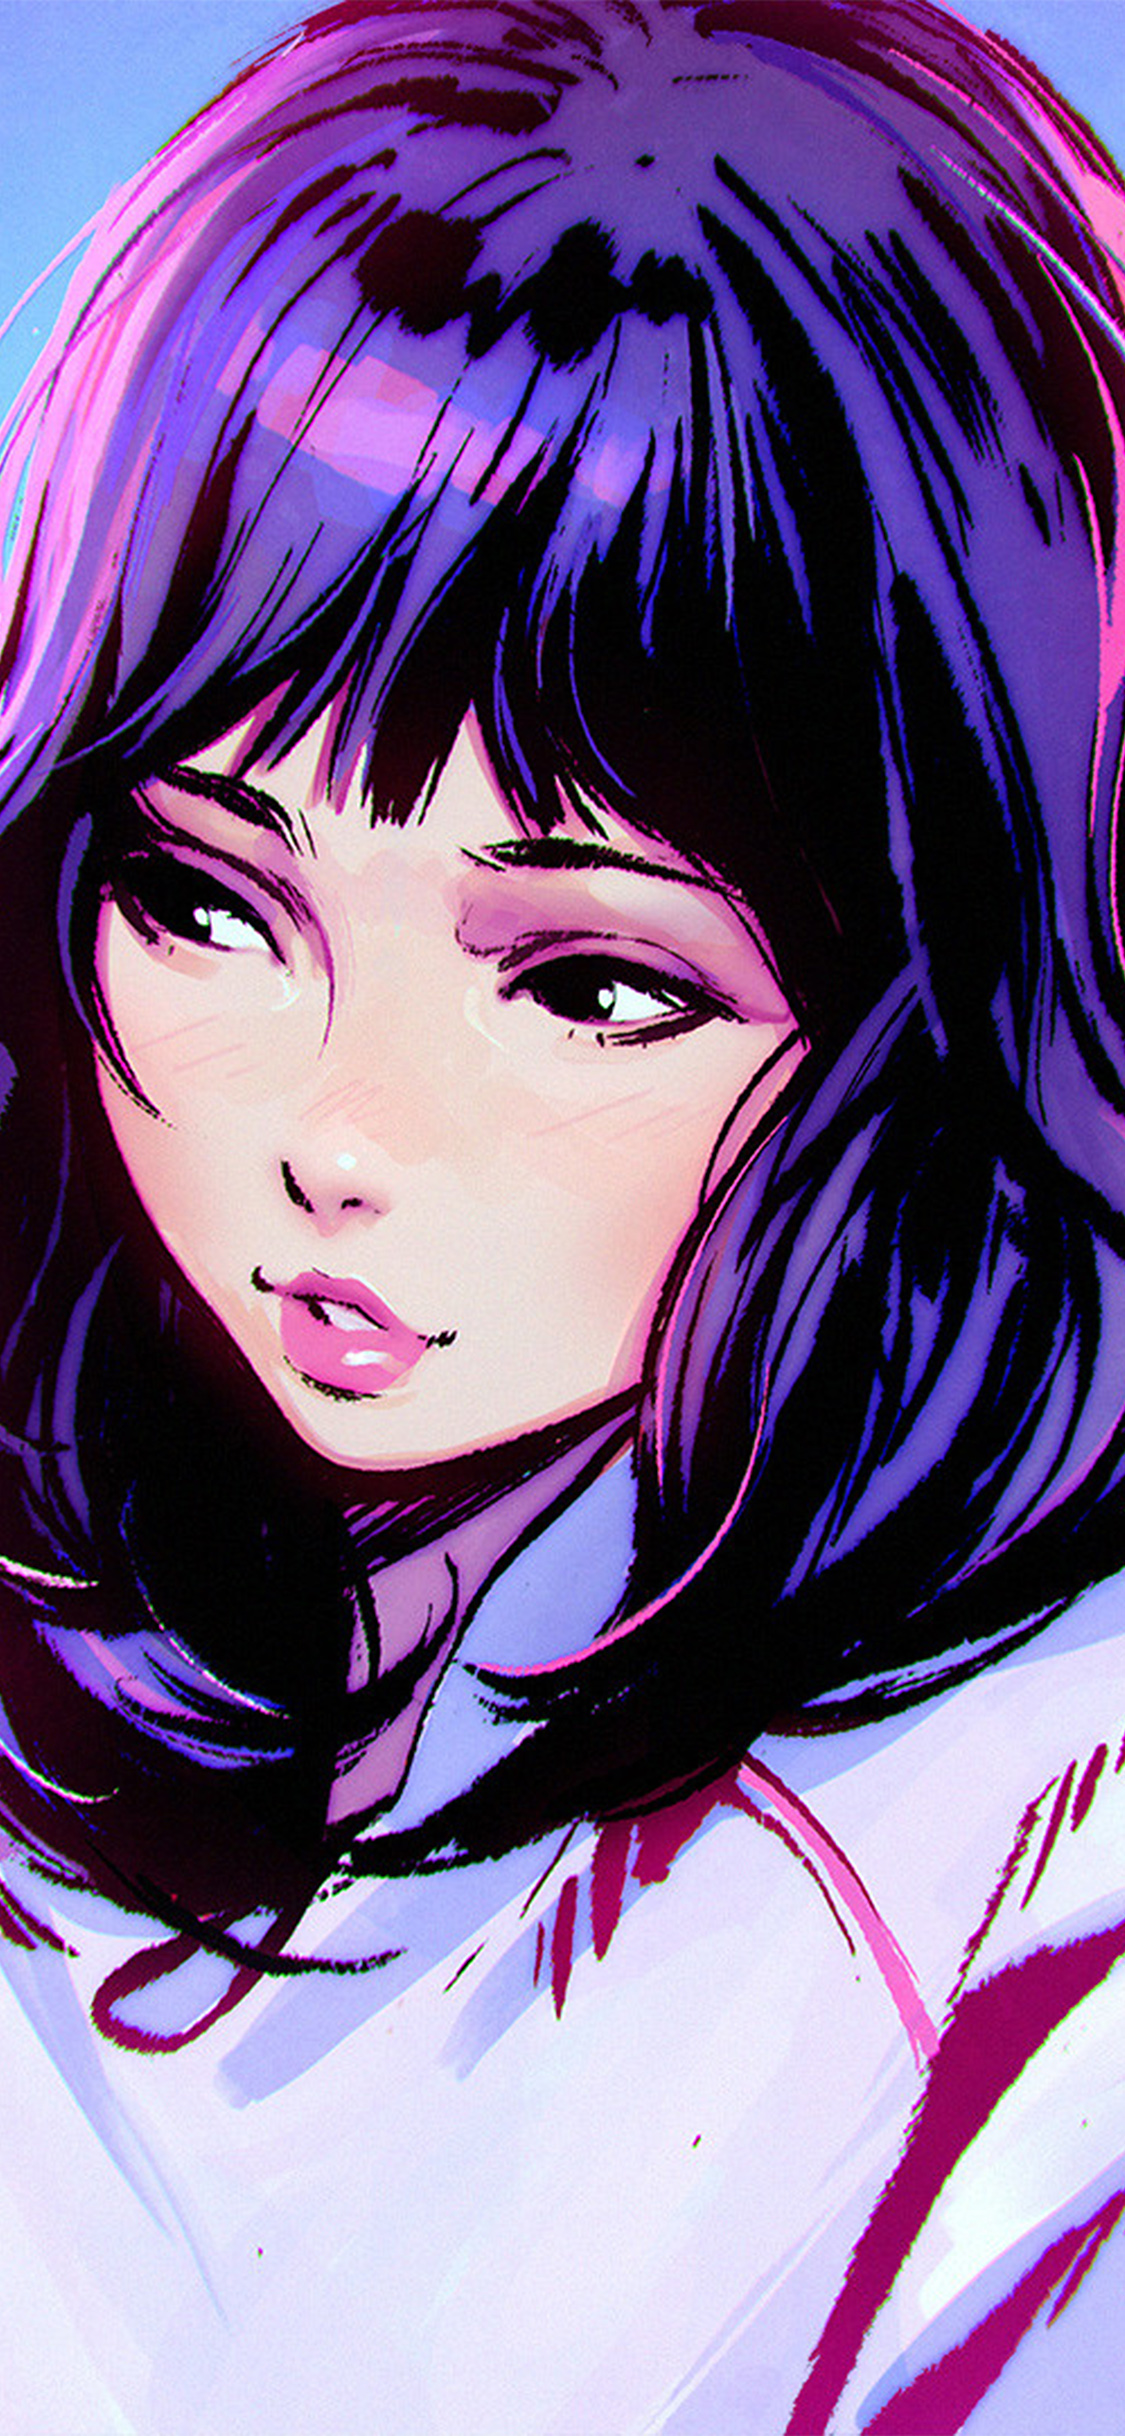 iPhoneXpapers.com-Apple-iPhone-wallpaper-aw57-ilya-kuvshinov-girl-purple-face-illustration-art